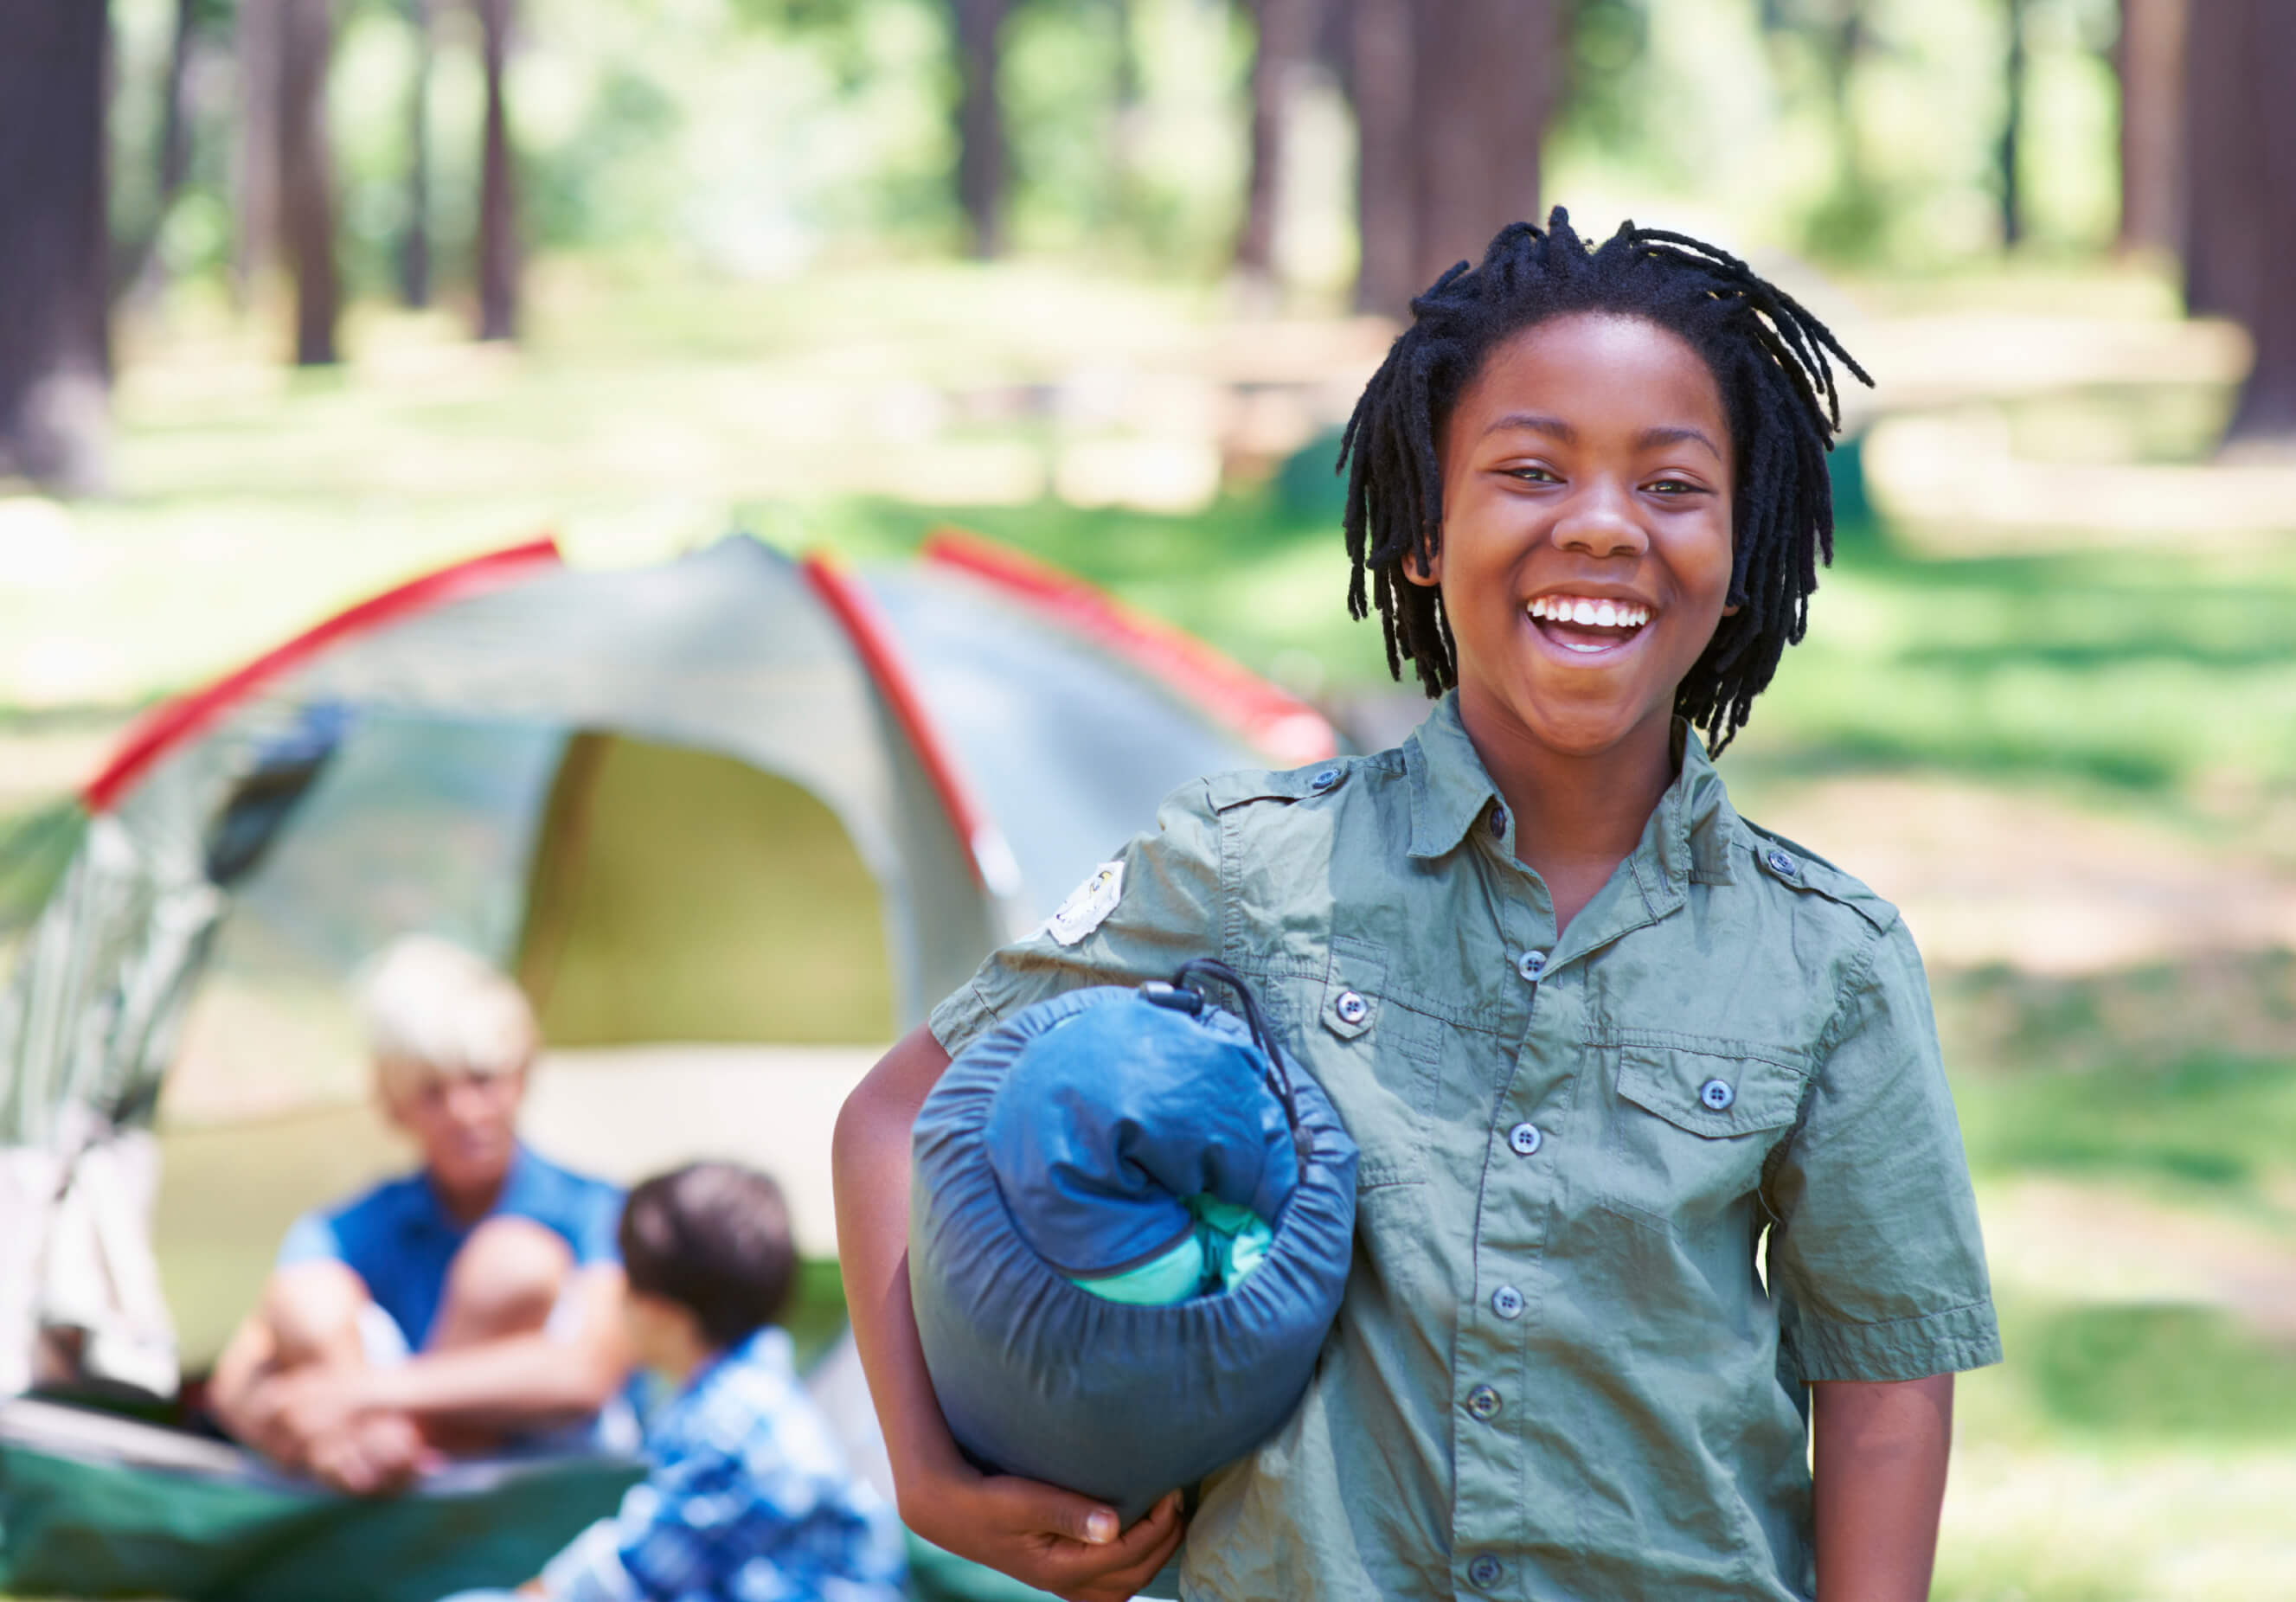 Boy Scout and Girl Scout Game Ideas